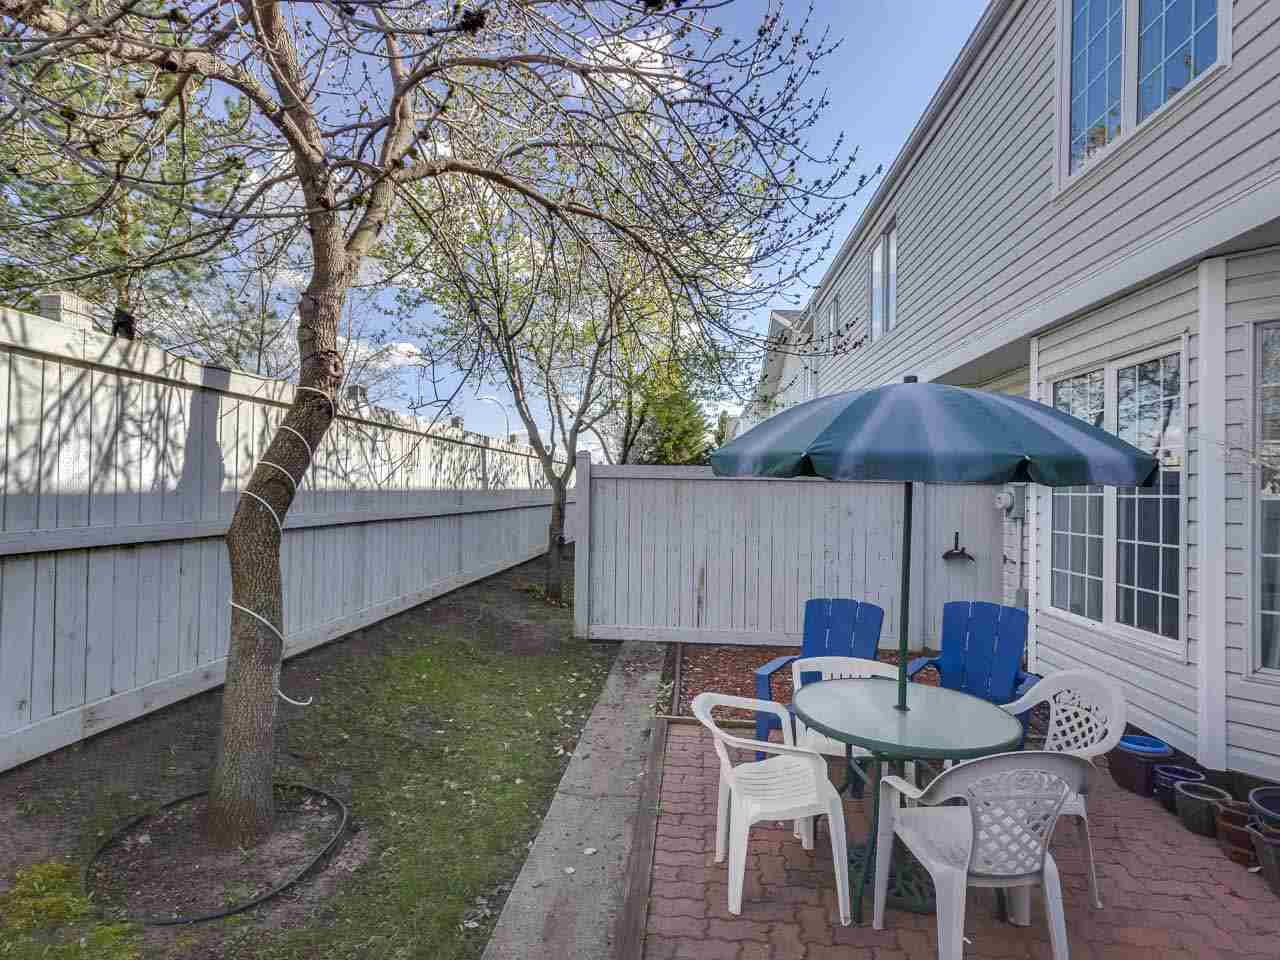 Photo 10: 27 2911 36 Street in Edmonton: Zone 29 Townhouse for sale : MLS® # E4081829